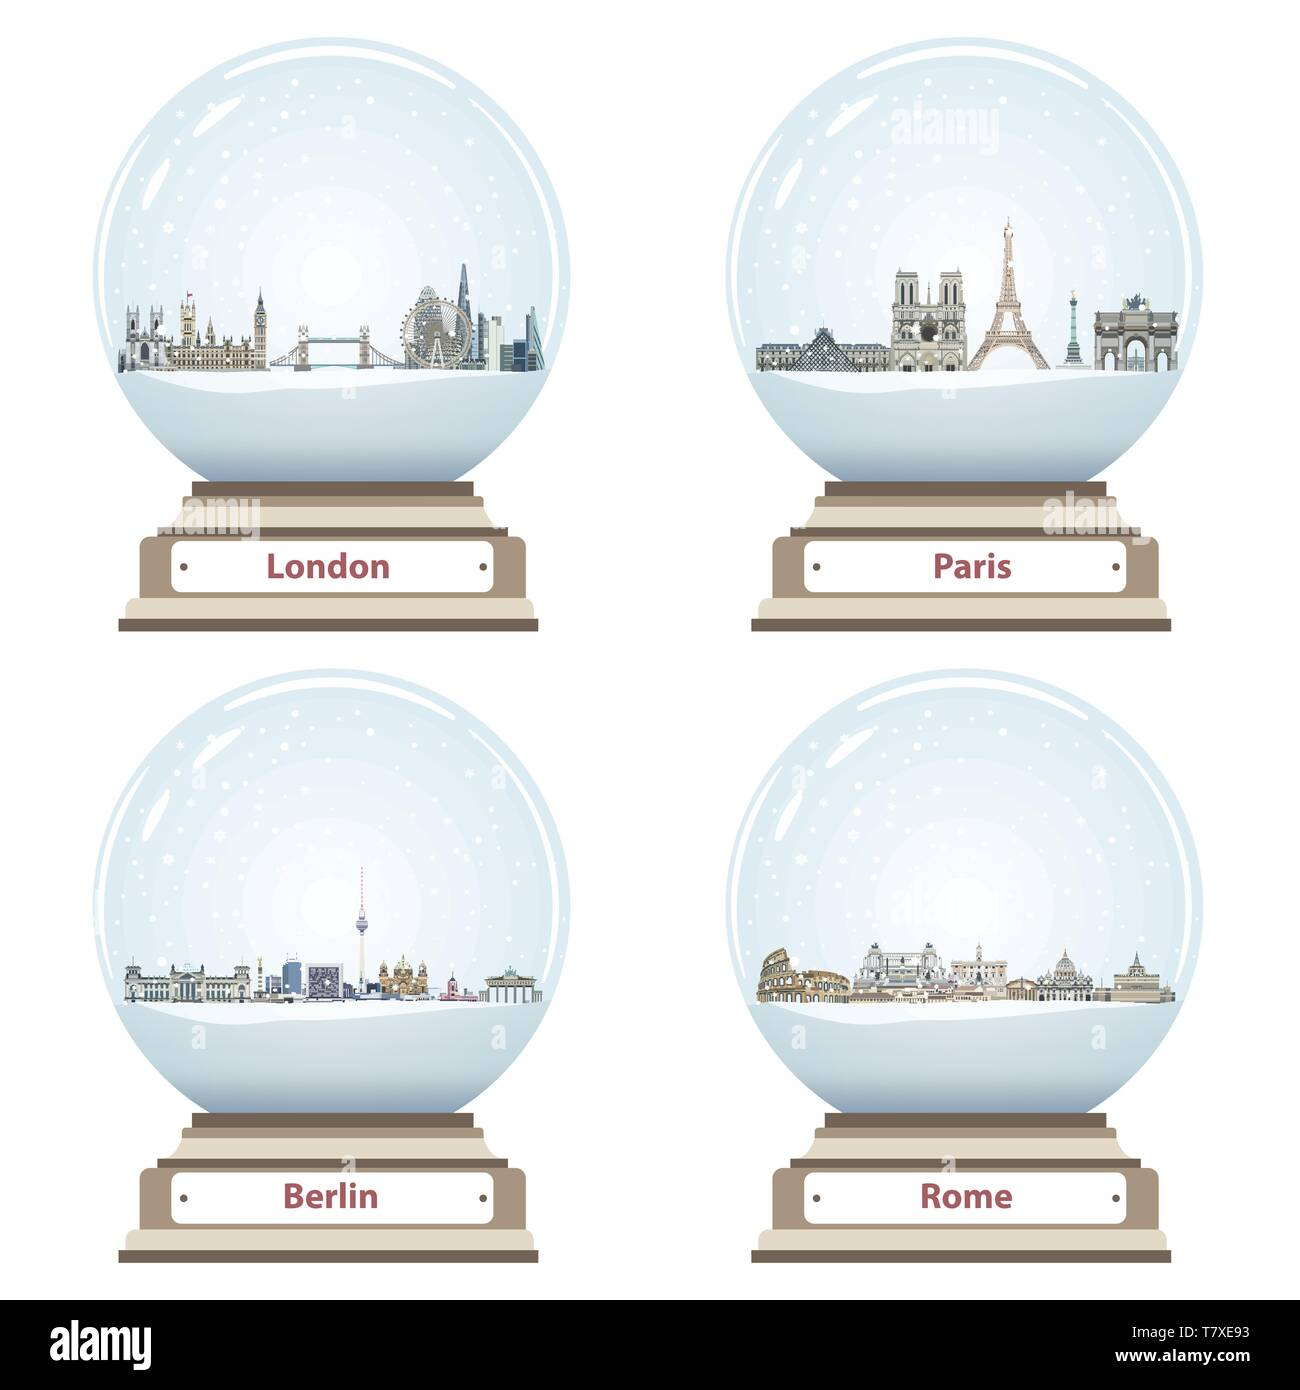 vector snow globes with London, Paris, Berlin and Rome landmarks inside - Stock Image